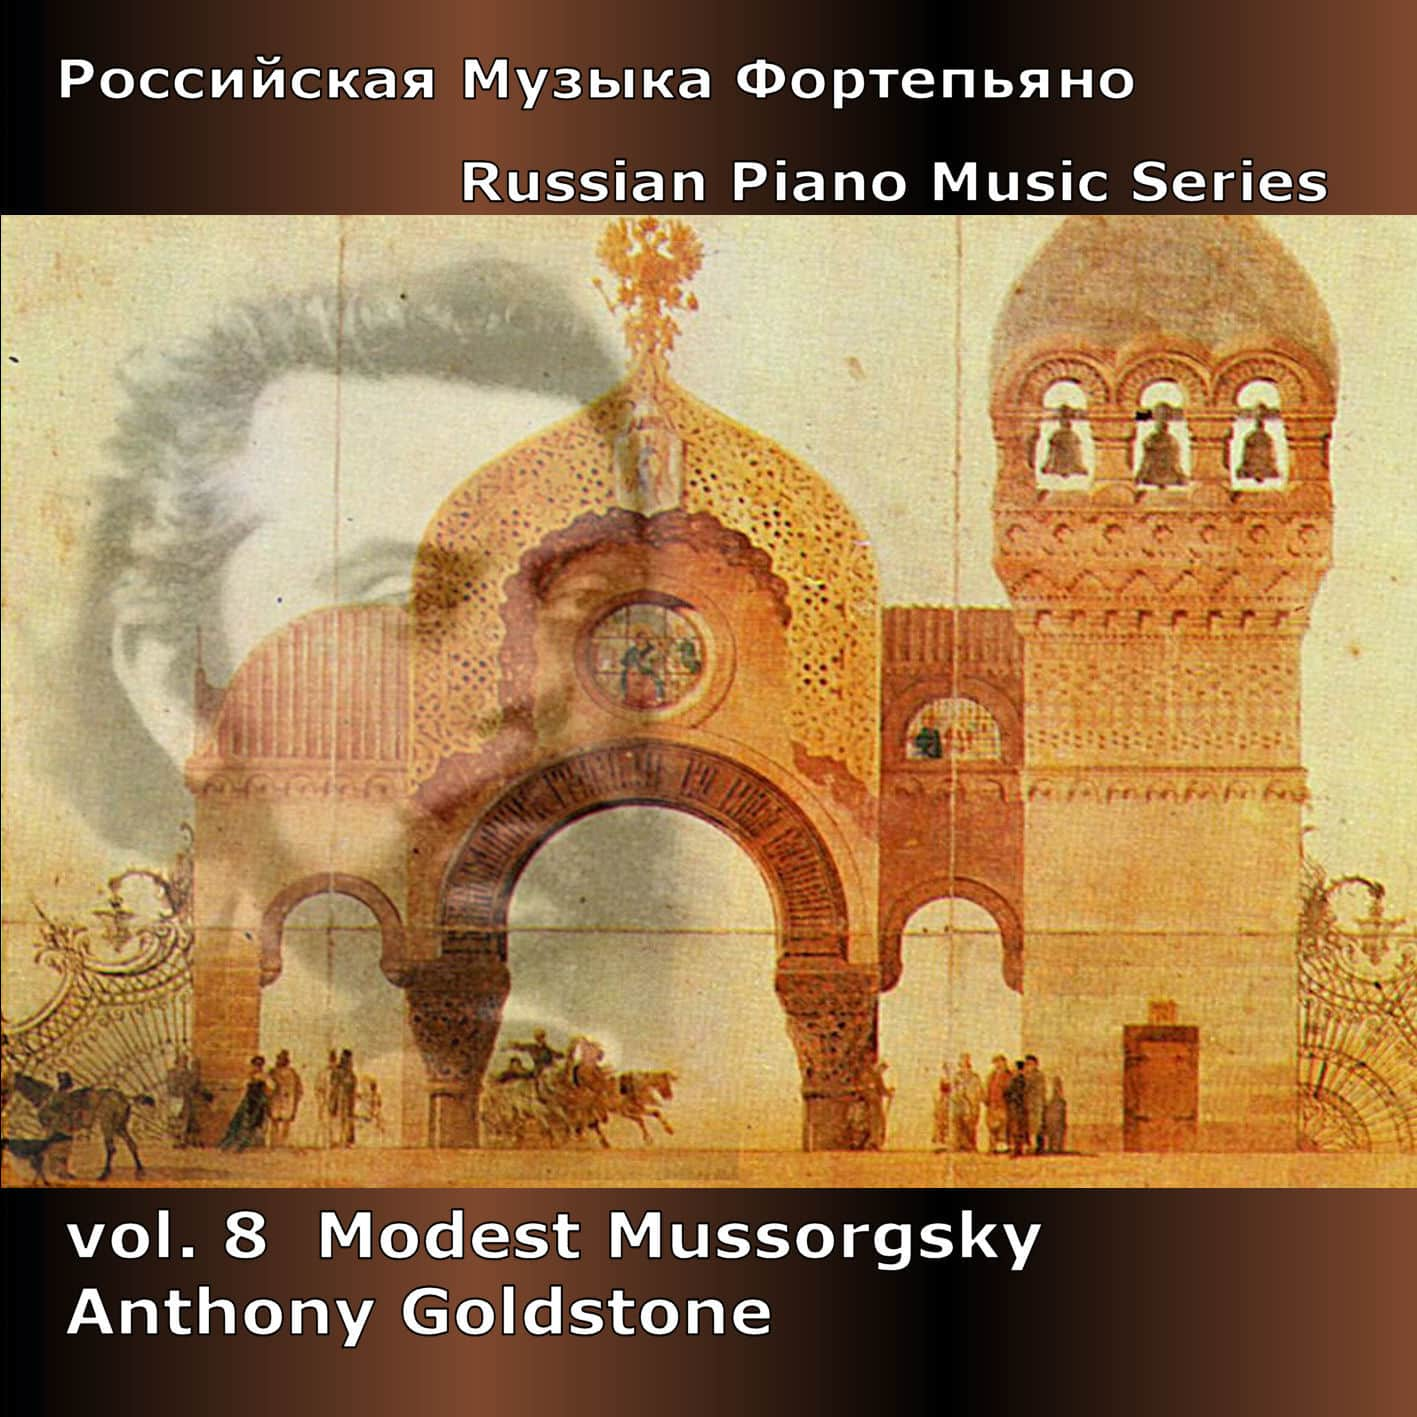 Russian Piano Music volume 8 - Mussorgsky